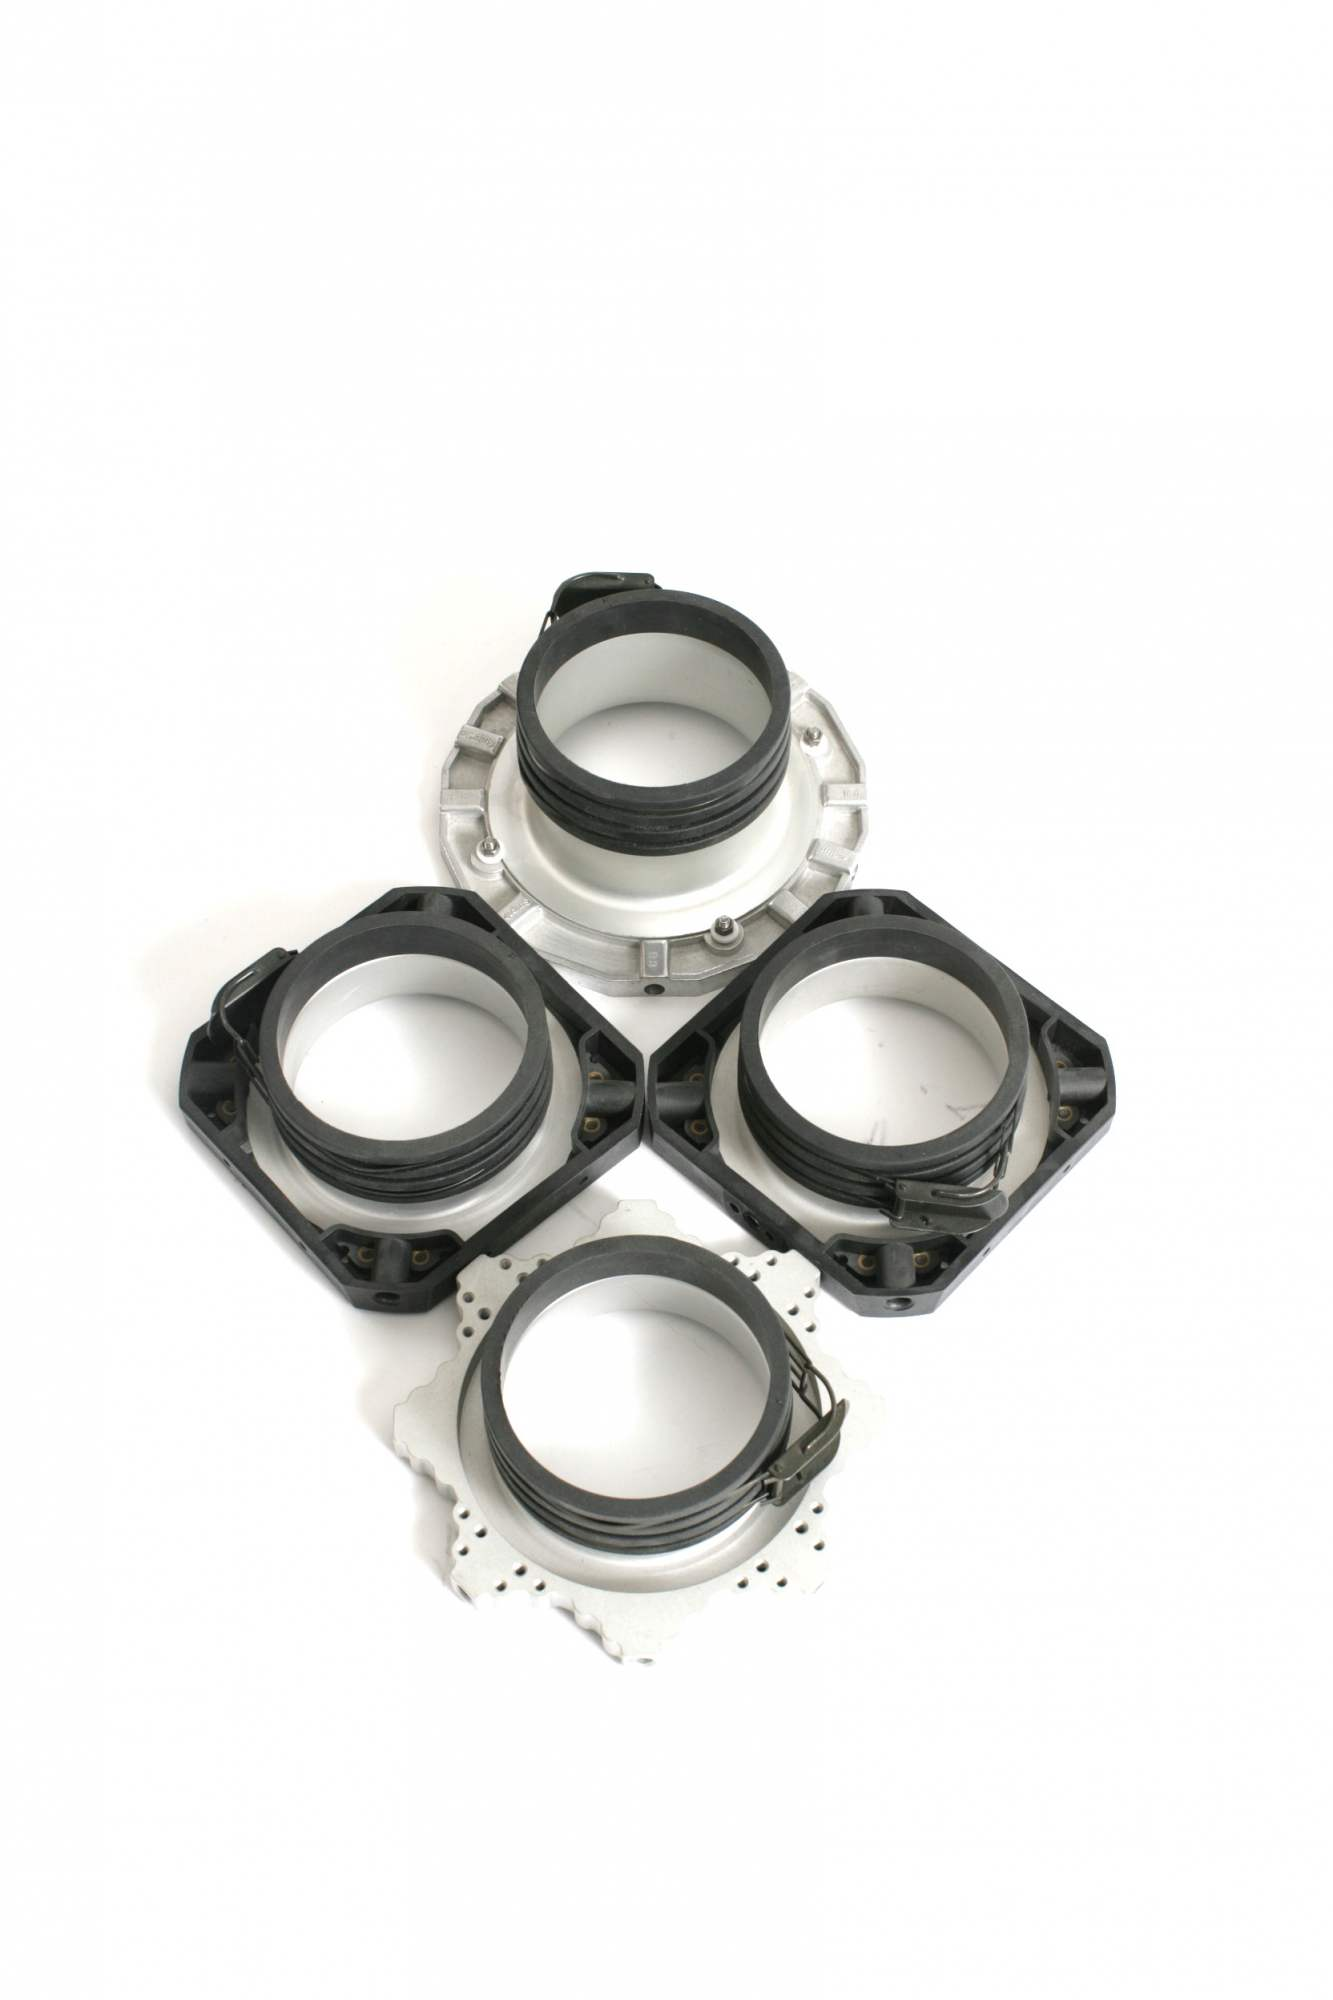 4 x Profoto speed rings. Included with Chimera soft boxes.